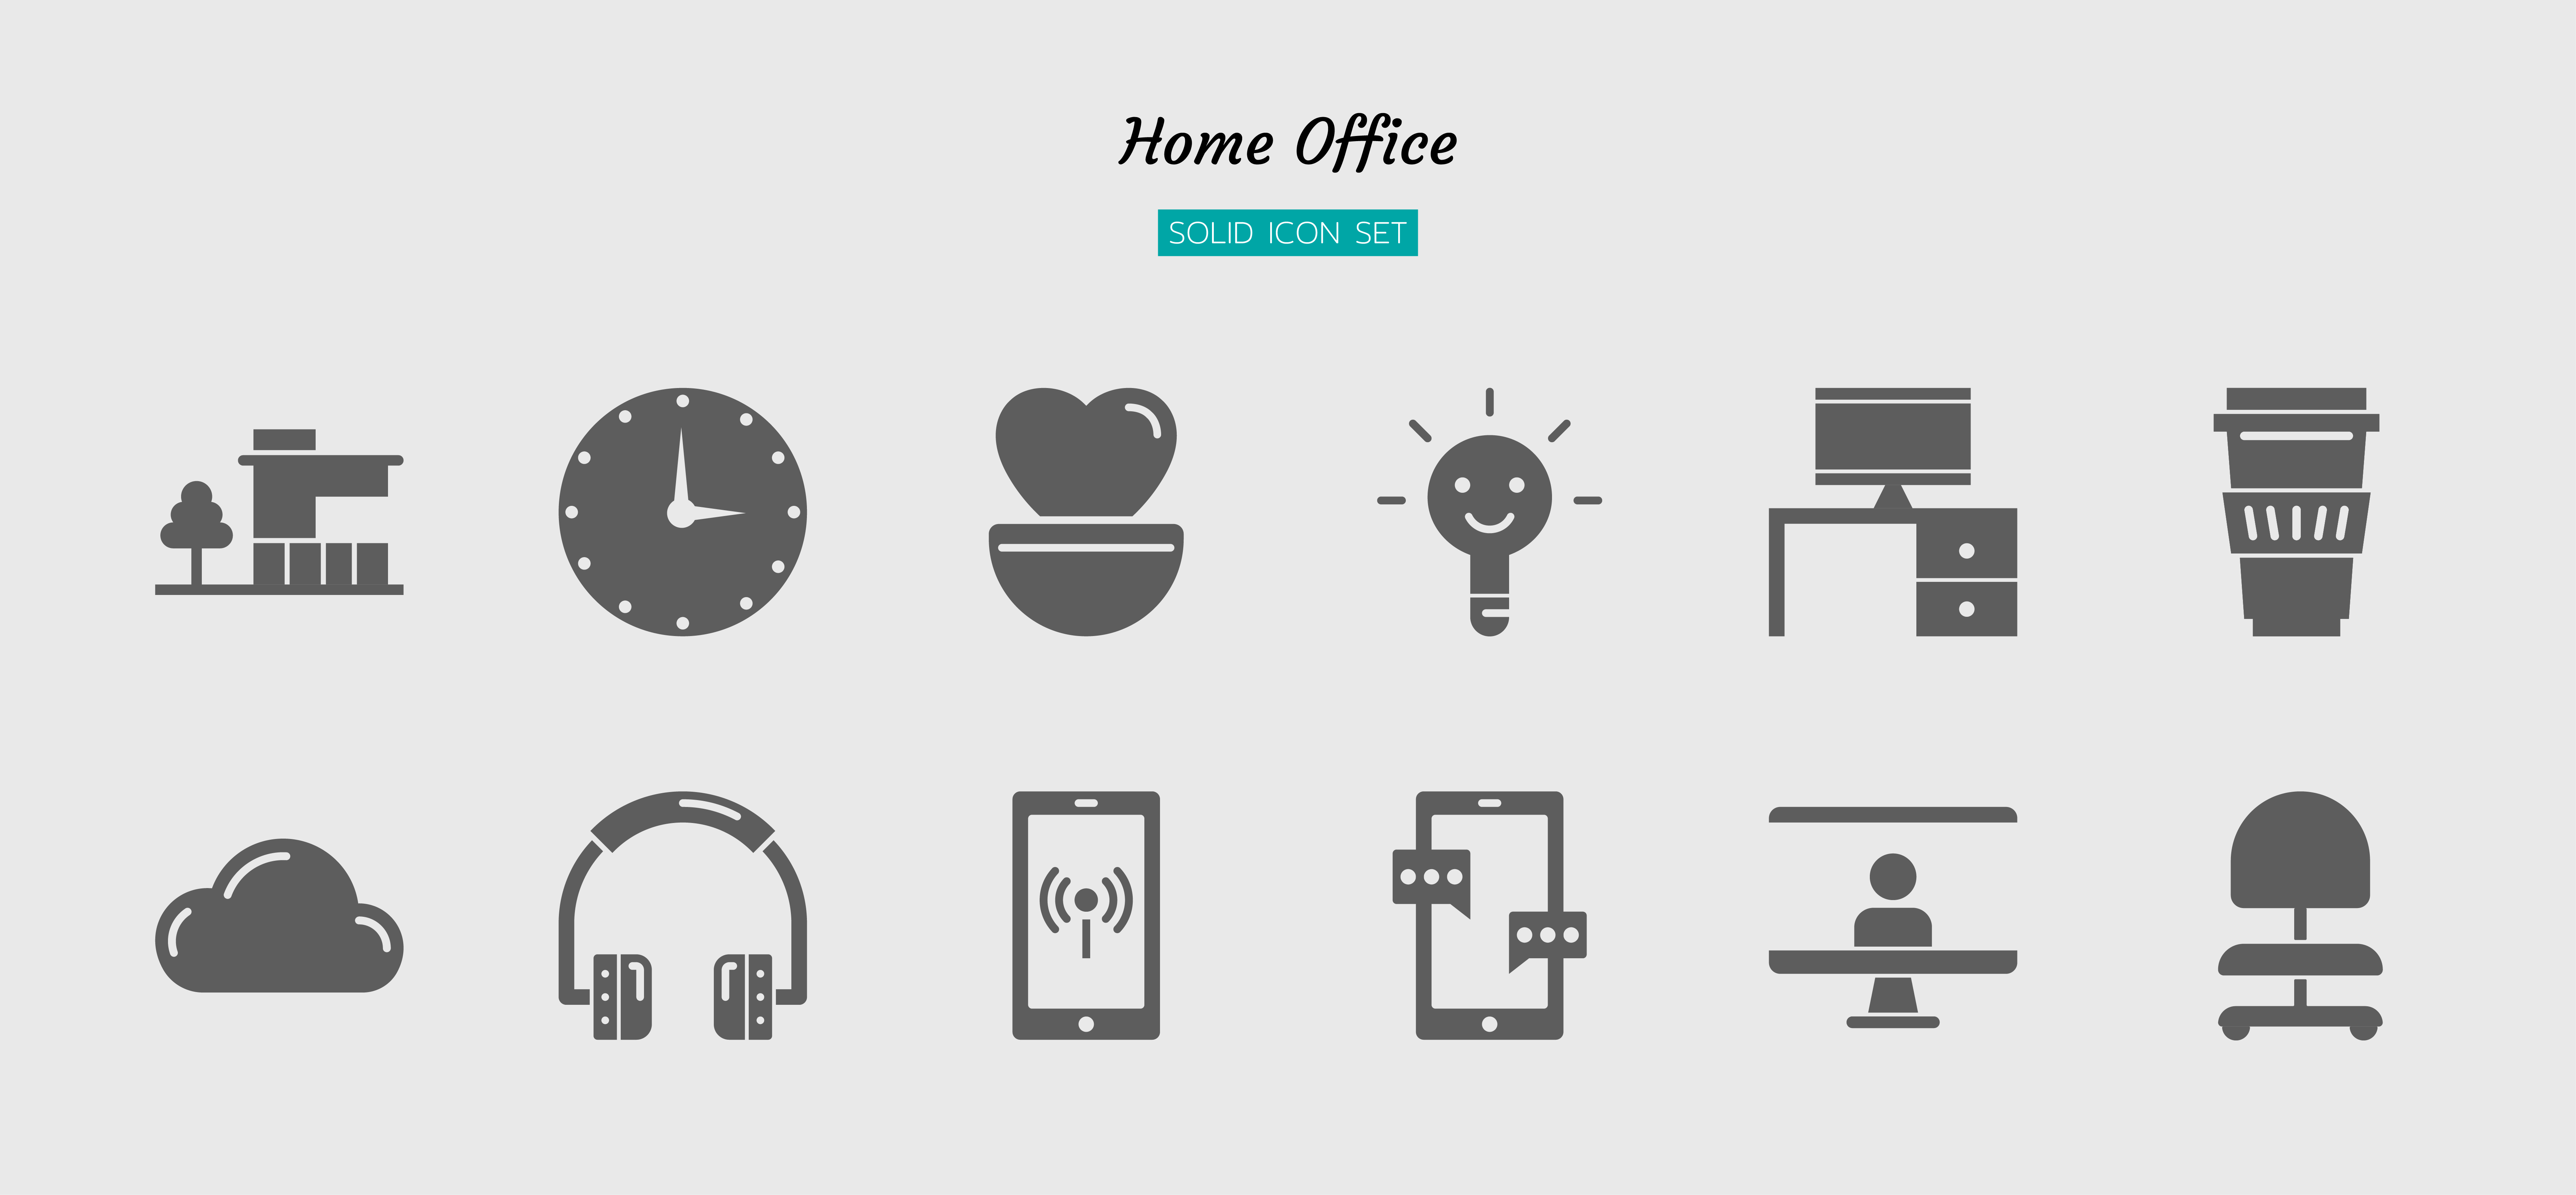 Solid icon symbol set, home office concept vector